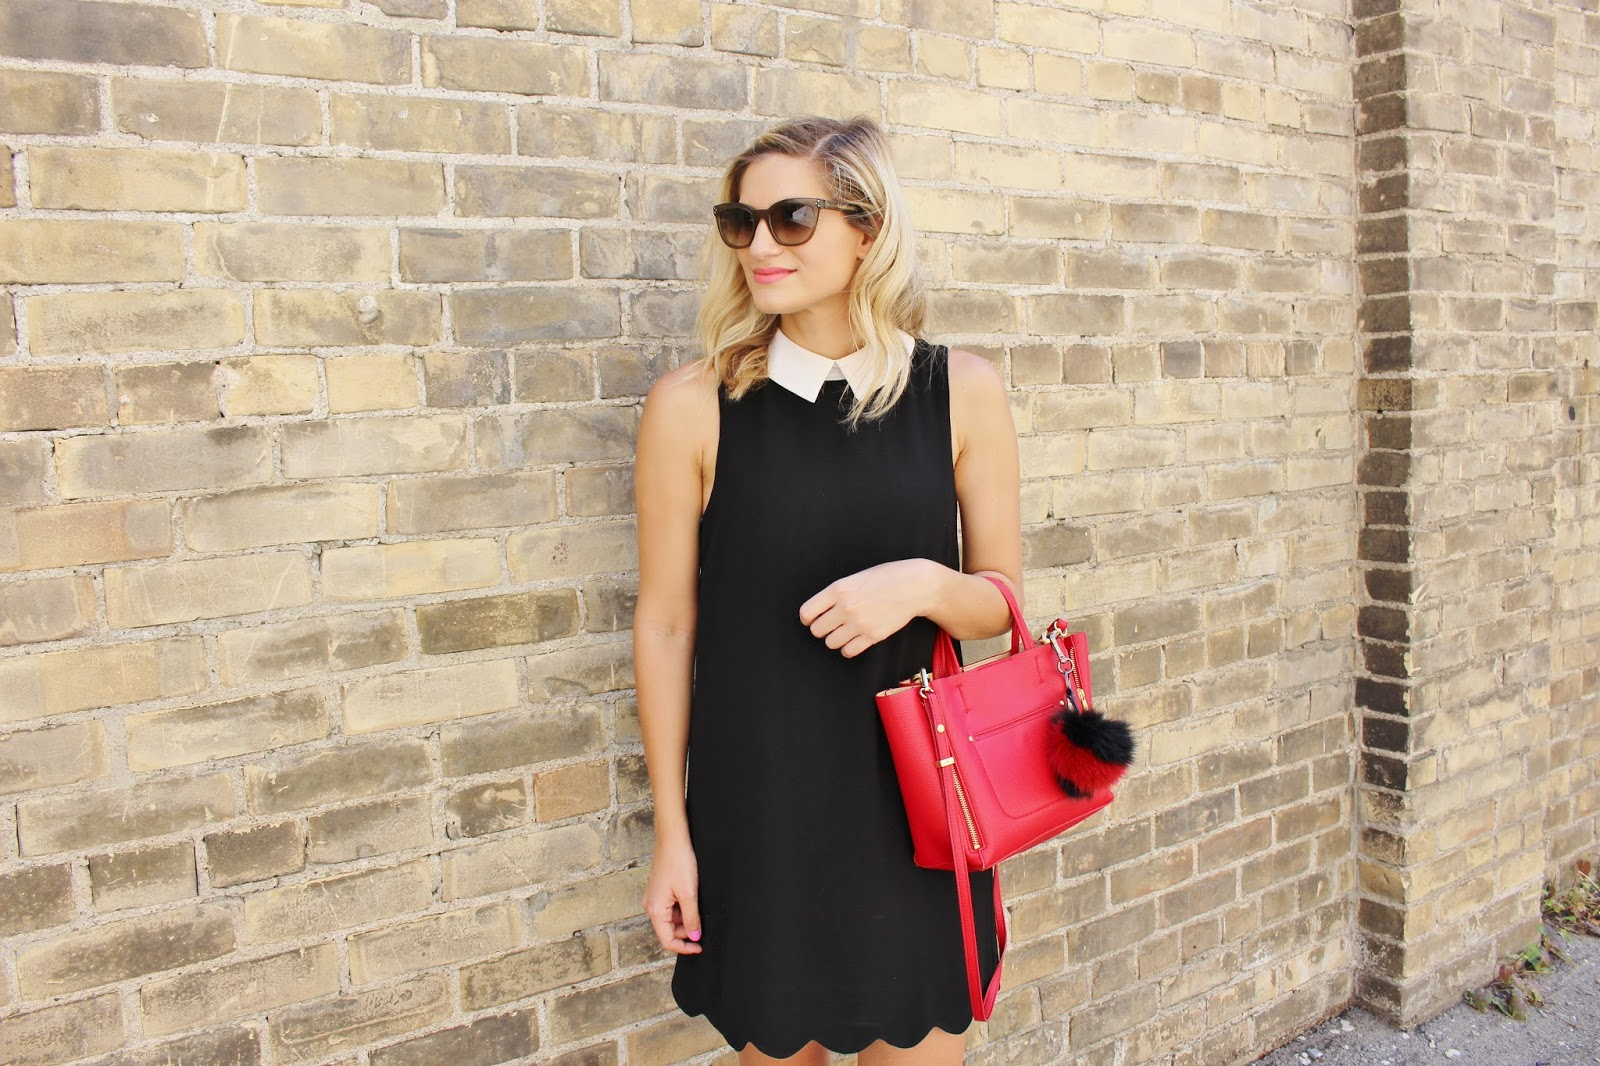 Bijuleni- Preppy peter pan collar black dress, red Ann Taylor tote and Celine sunglasses